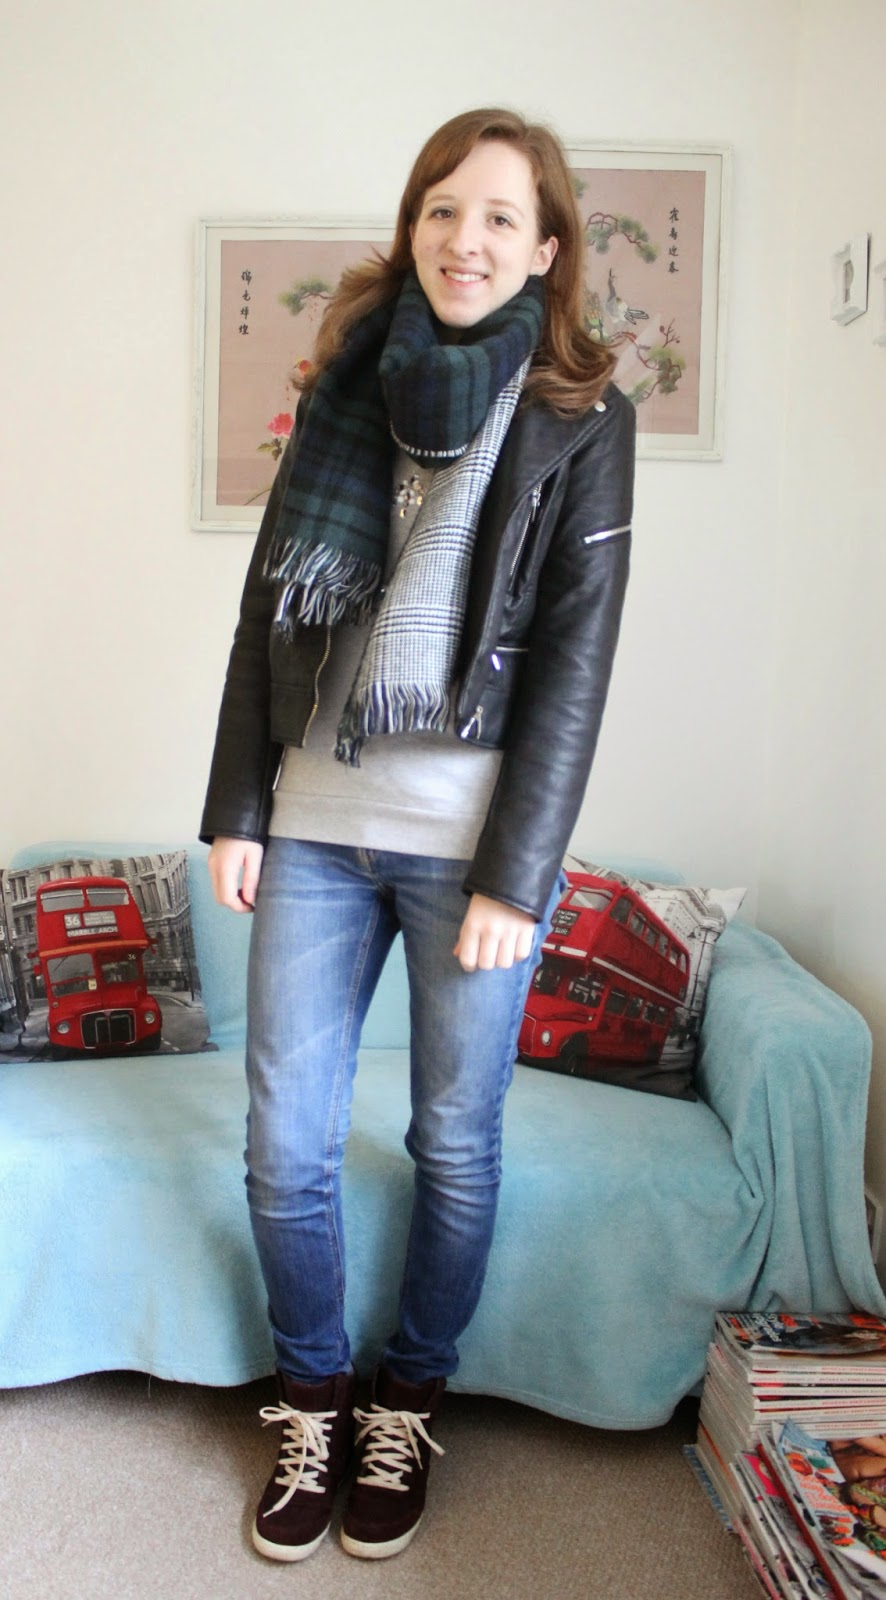 OOTD: Casual Jumper and Wedge Trainers with Zara, Tesco and Asos